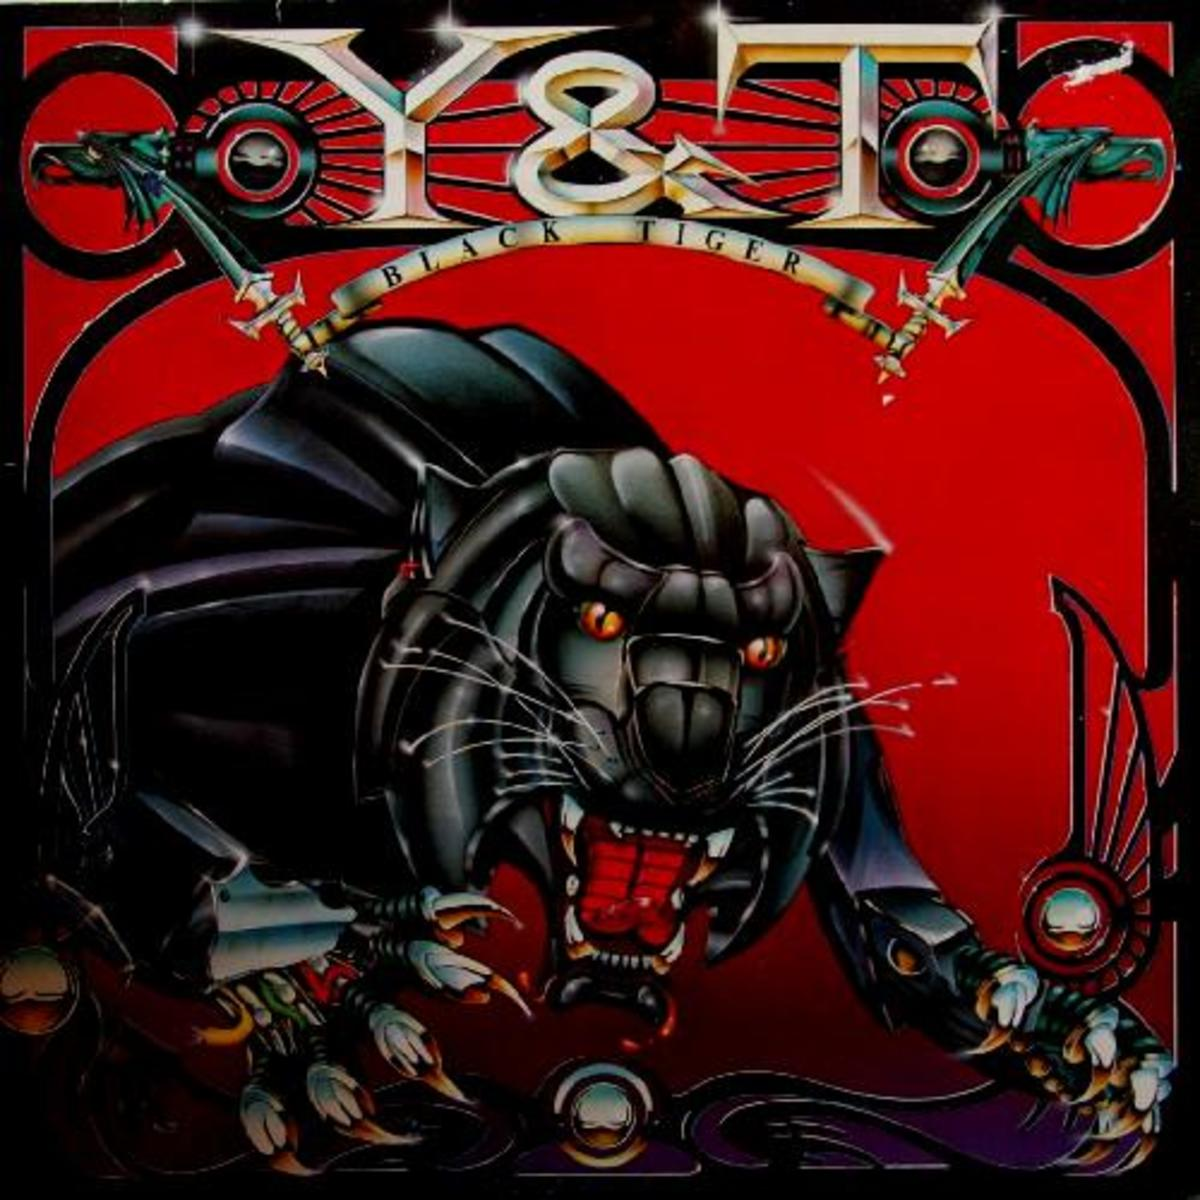 25-greatest-hard-rock-and-heavy-metal-album-covers